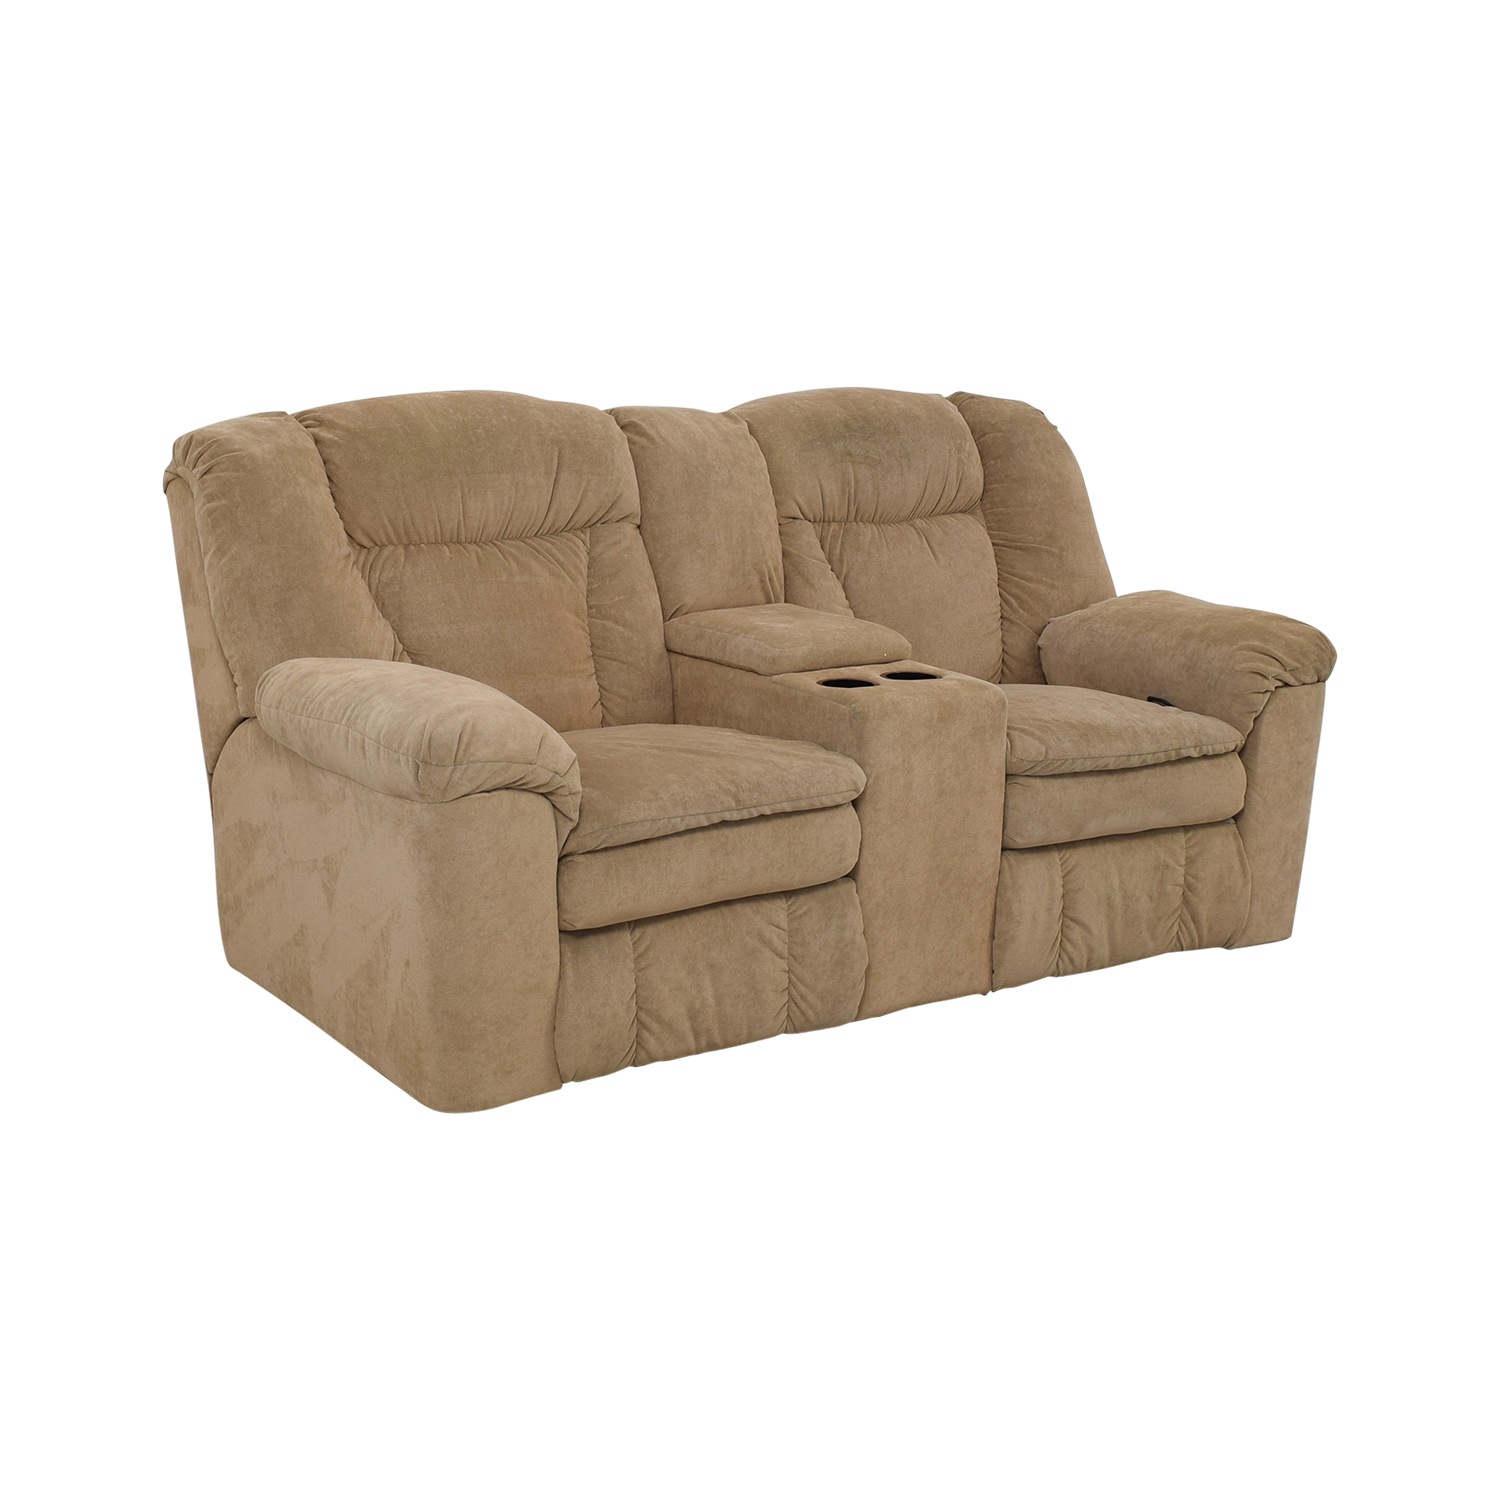 84 Off Lane Furniture Lane Furniture Reclining Sofa Sofas